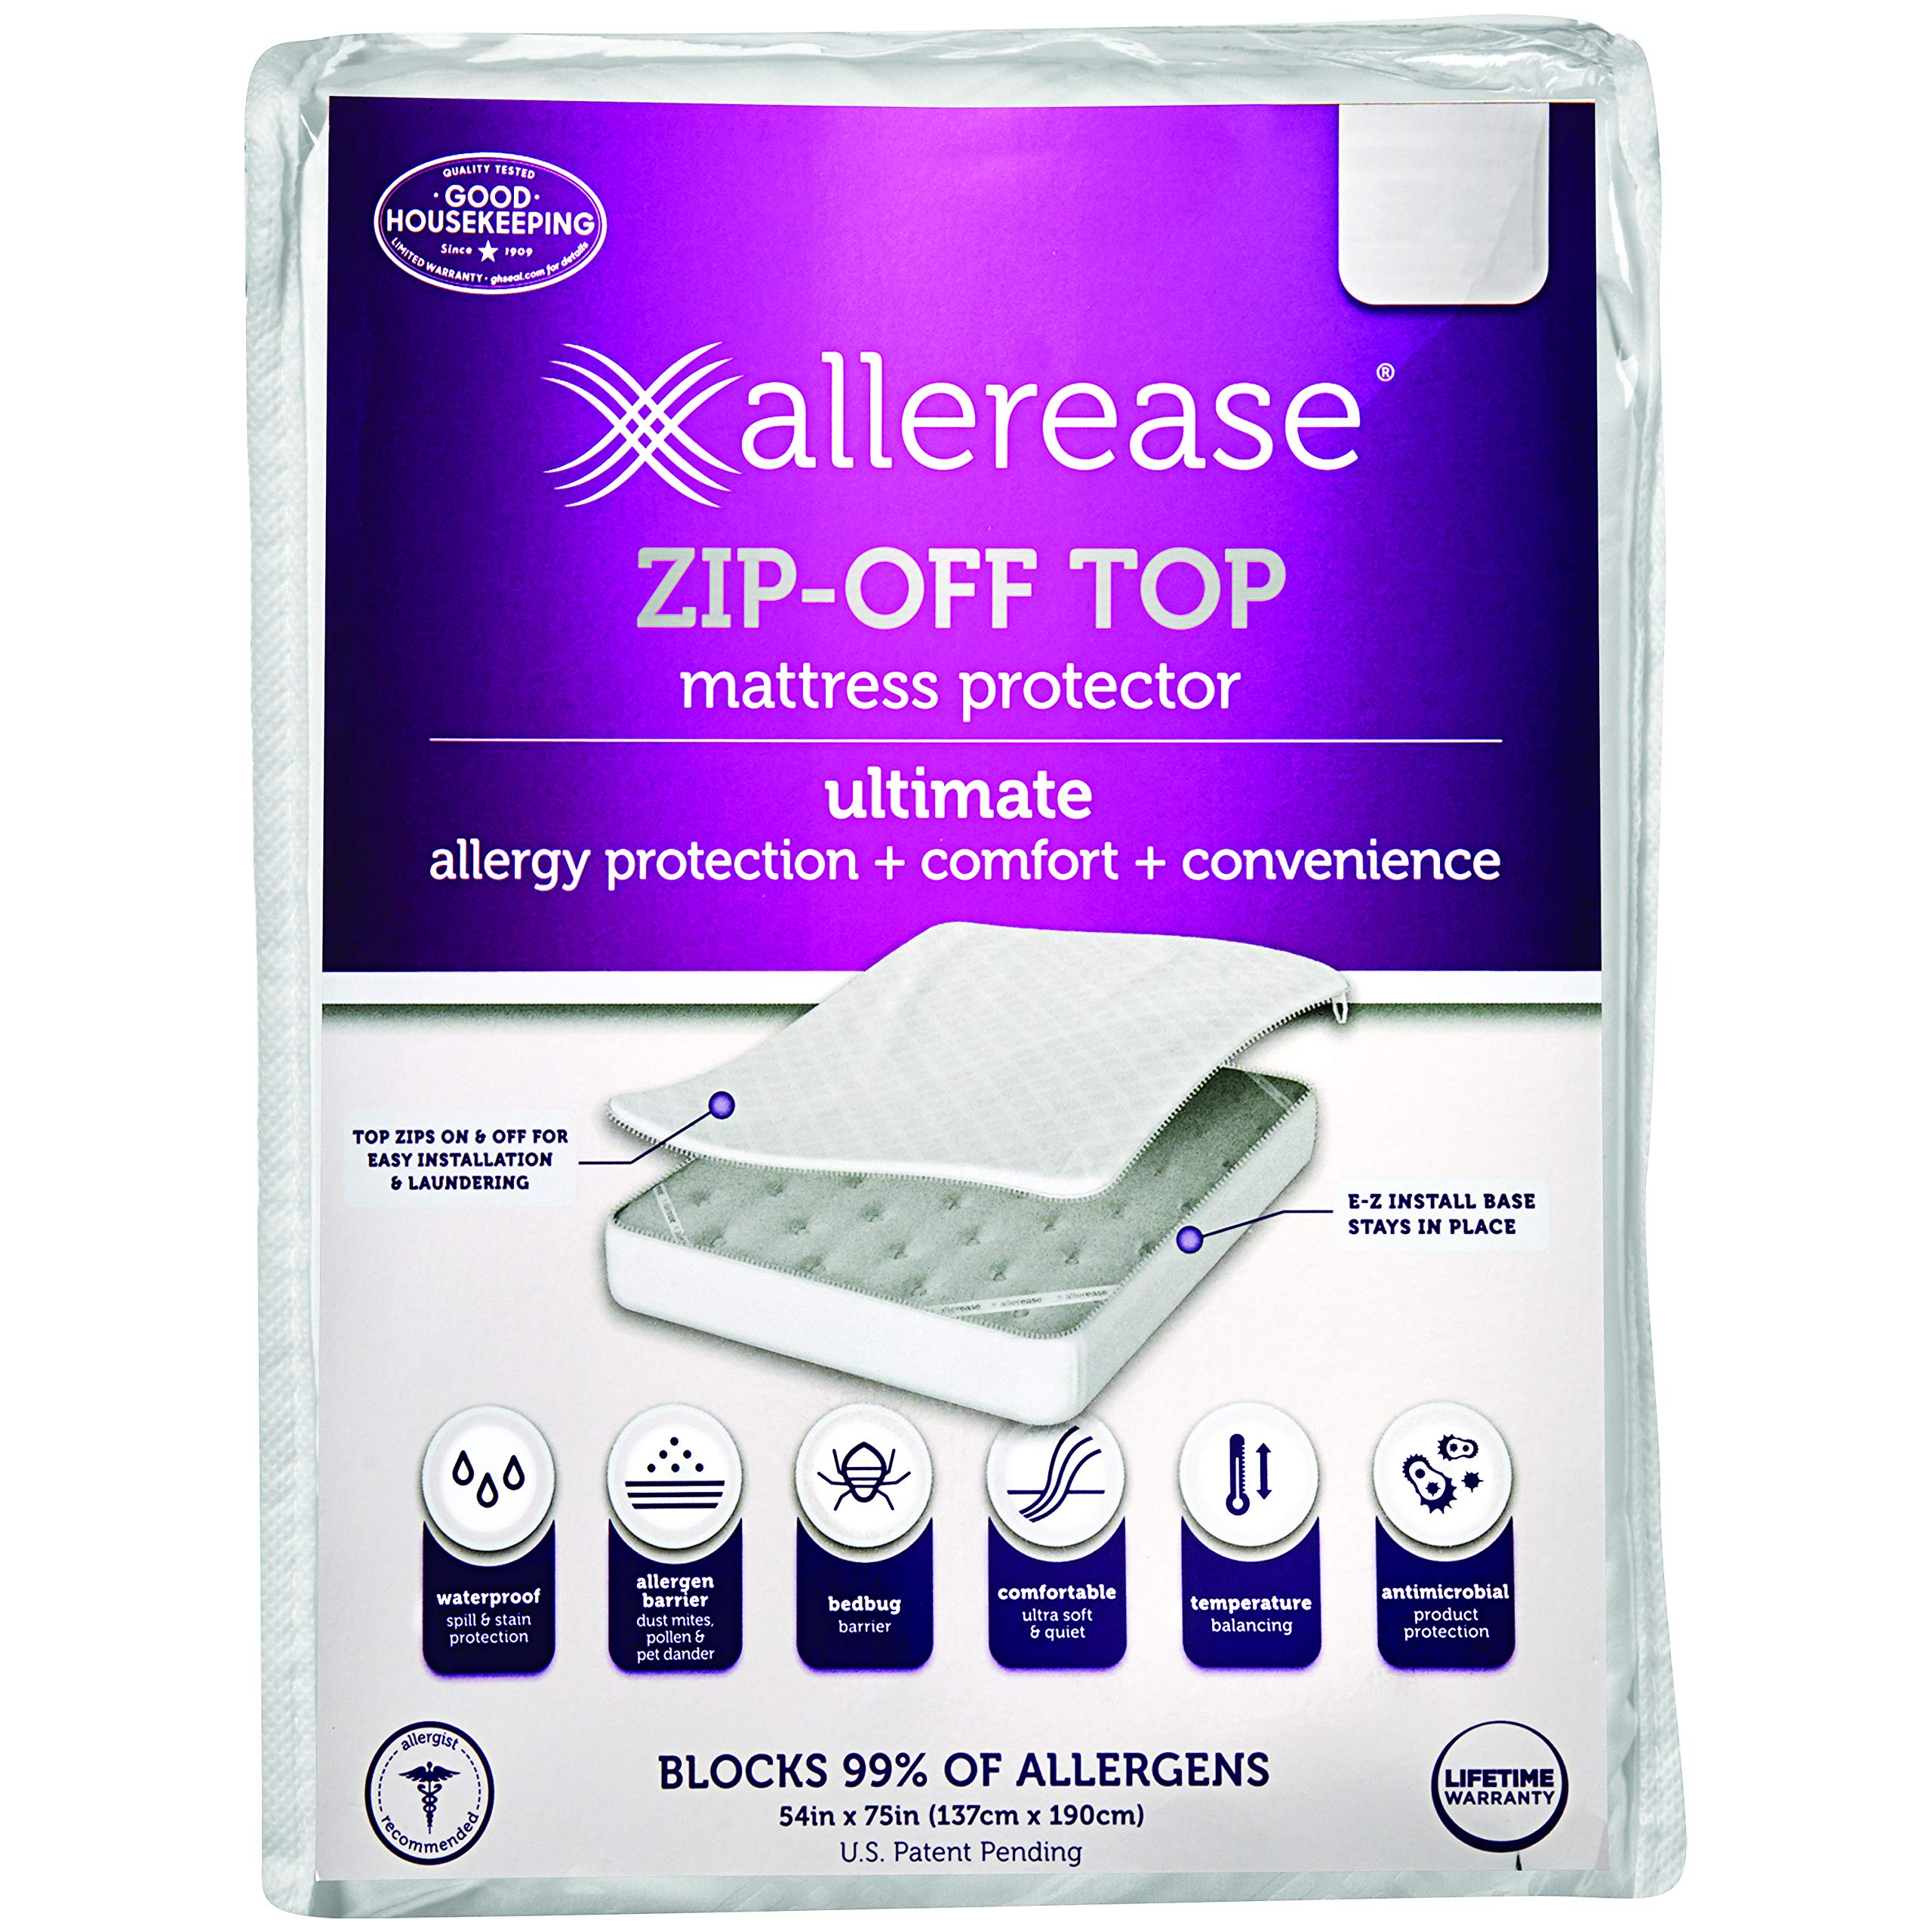 Aller-Ease Ultimate Zip-Off Top Mattress Protector – 360 Degree Zip-Off Mattress Top with Temperature Balancing Technology, Plush Protection Against Bed Bugs, Dust Mites & Pet Dander, King Sized